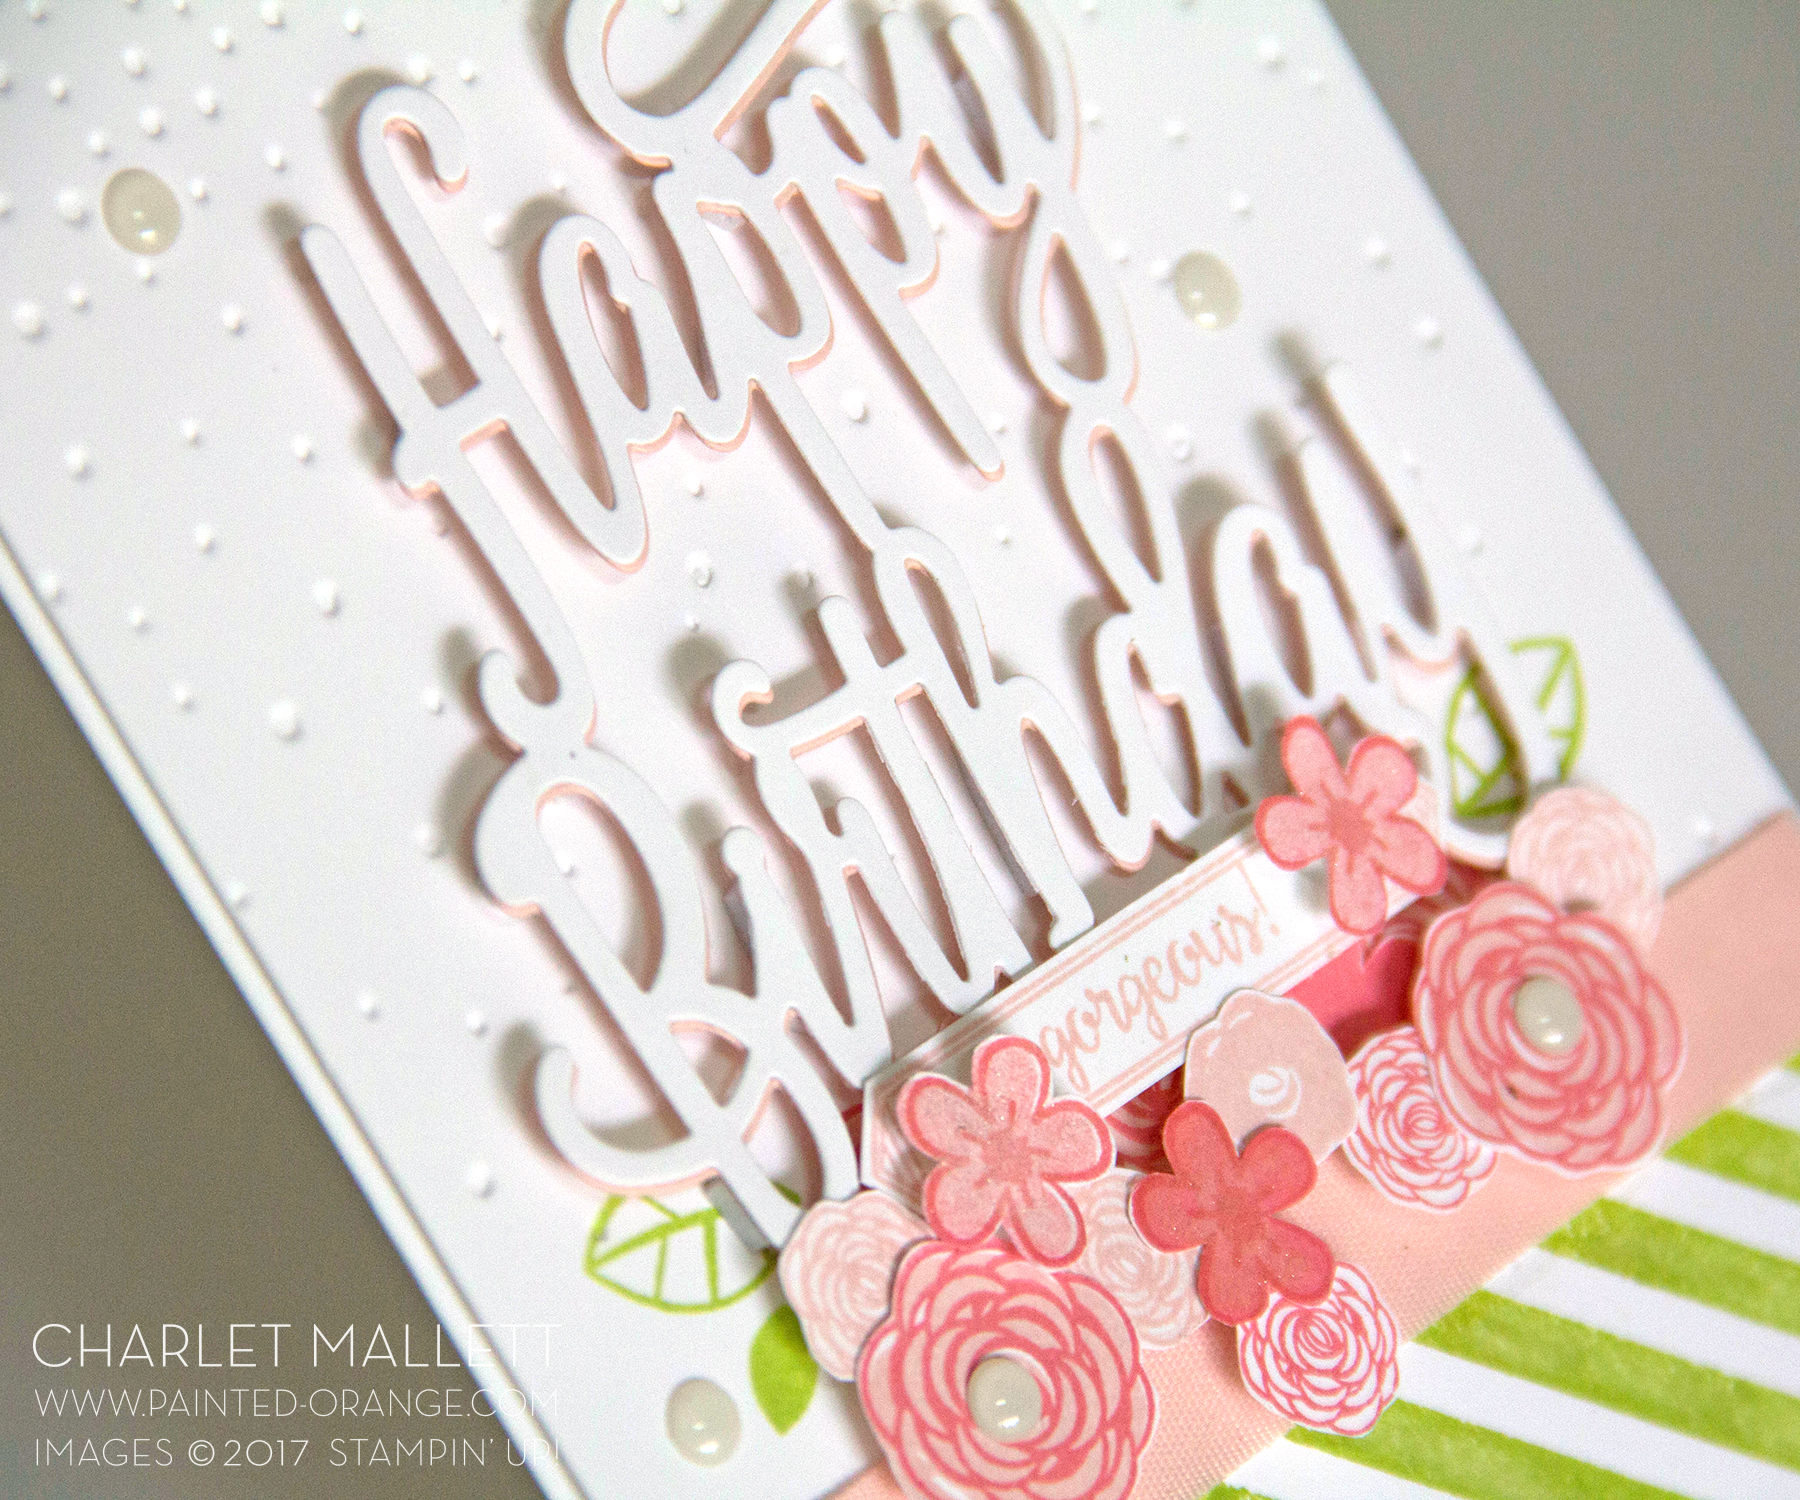 Charlet Mallett - The Happy Birthday Die has been cut twice. Once in Whisper White and once in Powder Pink. Cut phrase has been layered and offset slightly to create a little subtle drop shadow. Stampin' Up!